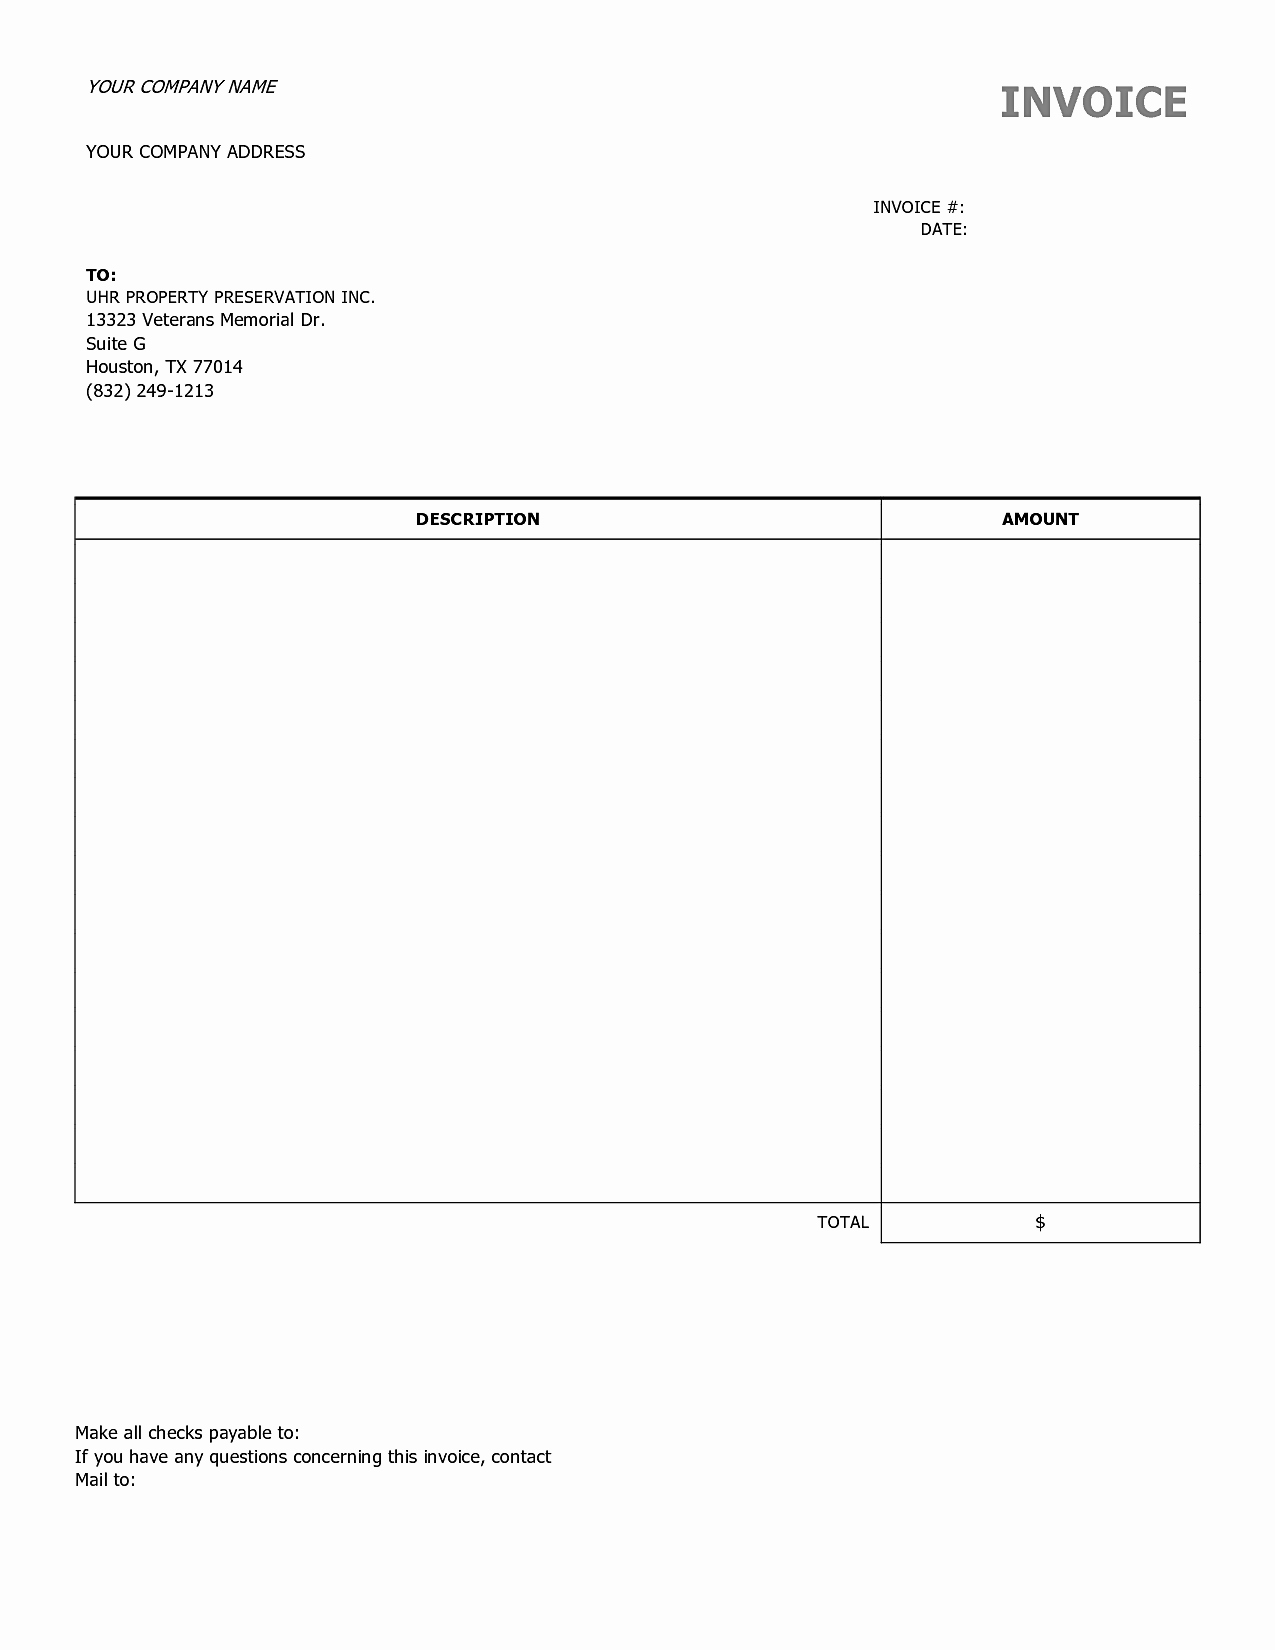 Examples Of Invoices In Word Fresh Blank Invoices to Print Mughals